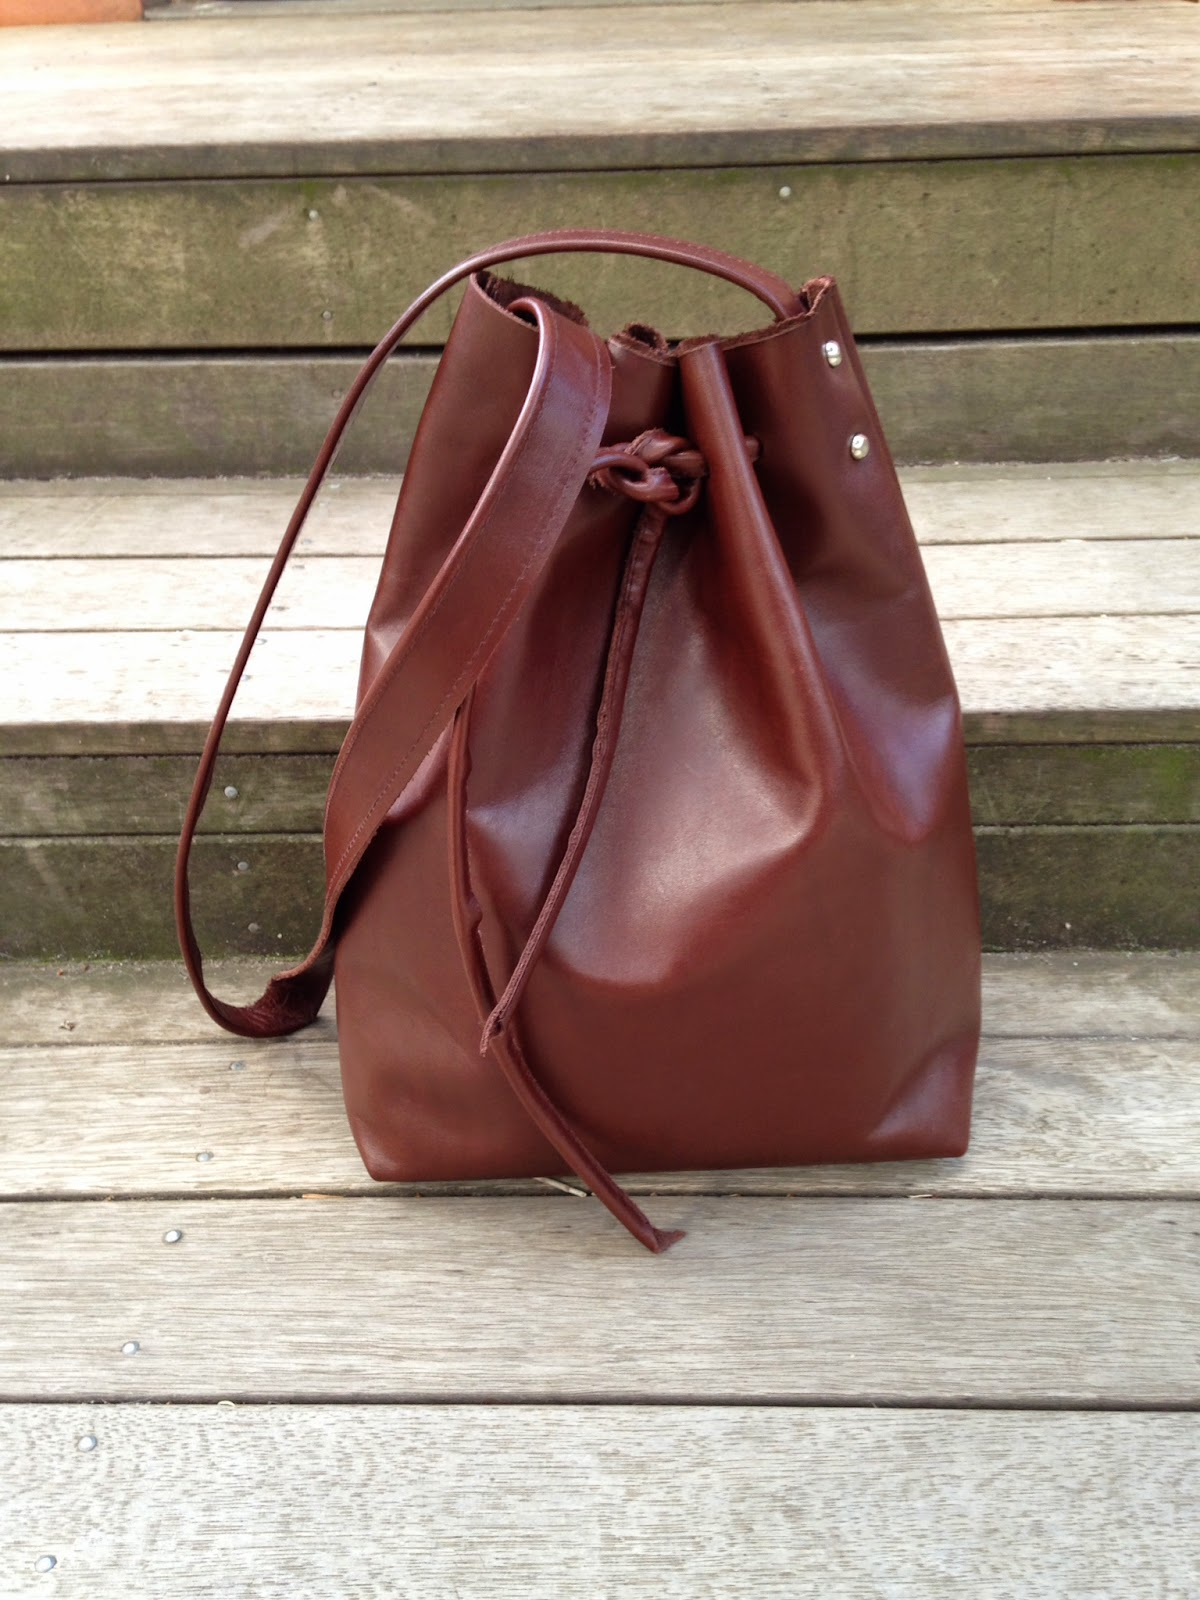 http://mel-allwrappedup.blogspot.com.au/2015/01/diy-leather-bucket-bag.html